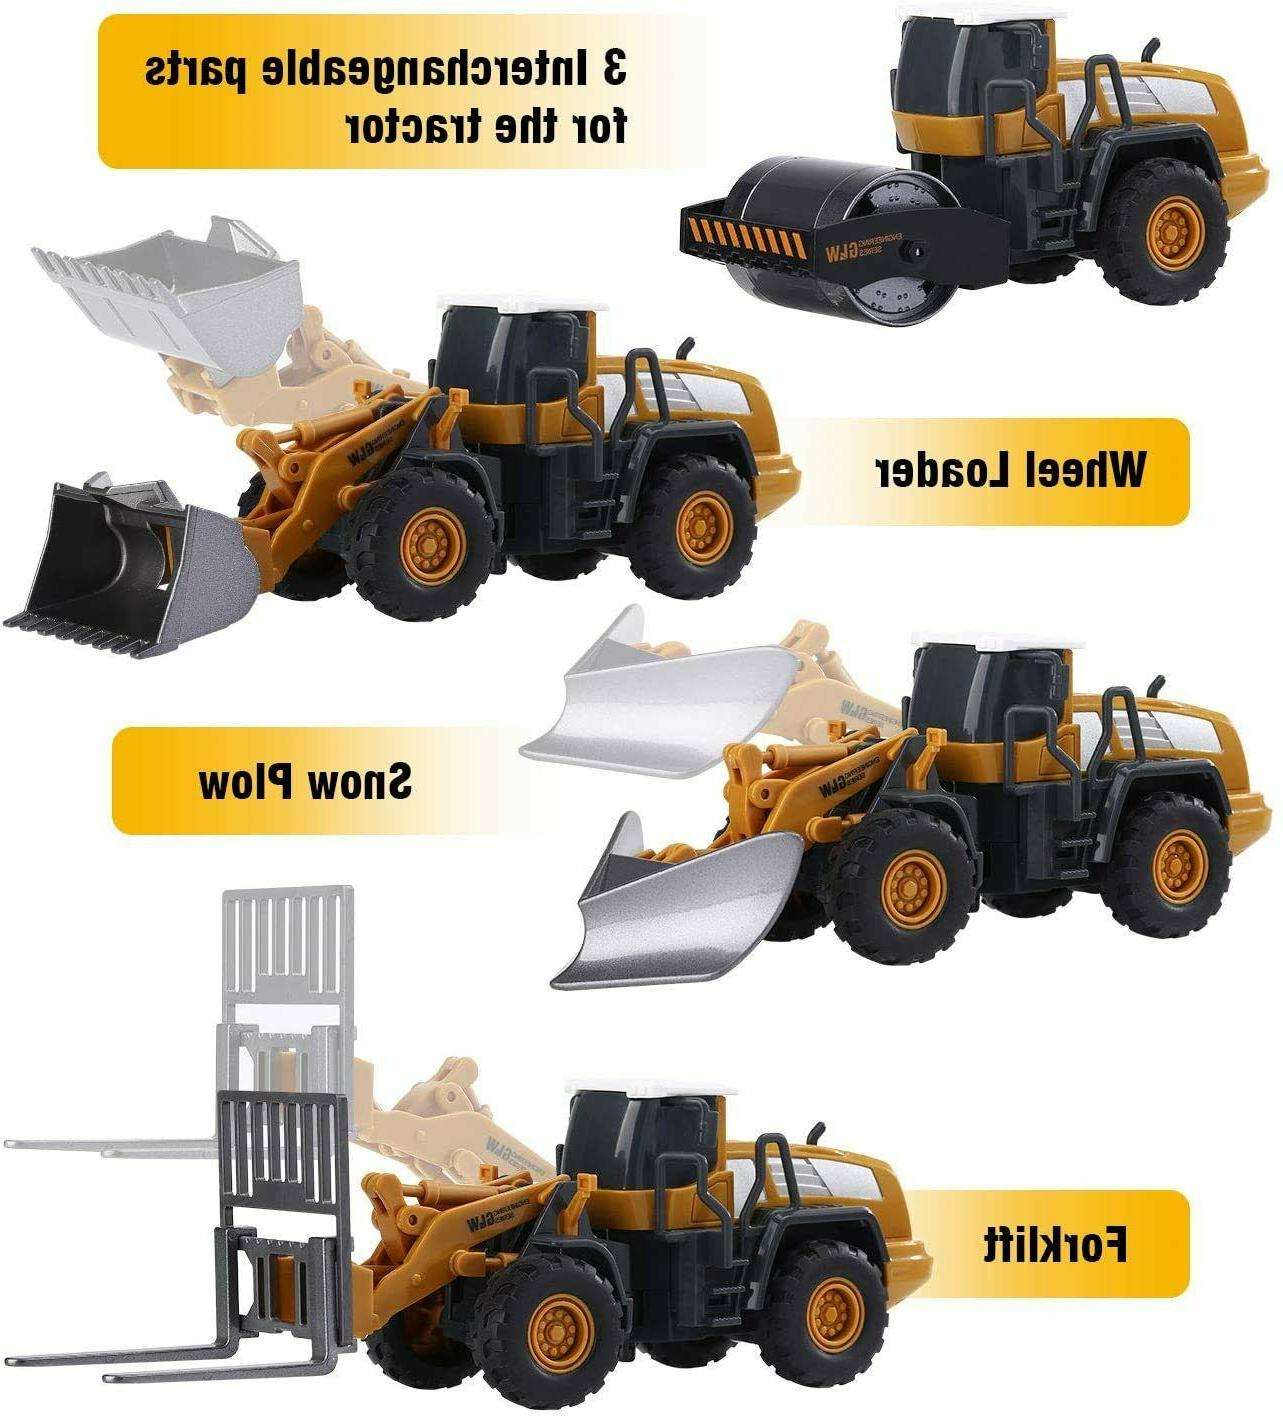 Toys Truck Toy Kids Alloy Construction Engineering Excavator Baby